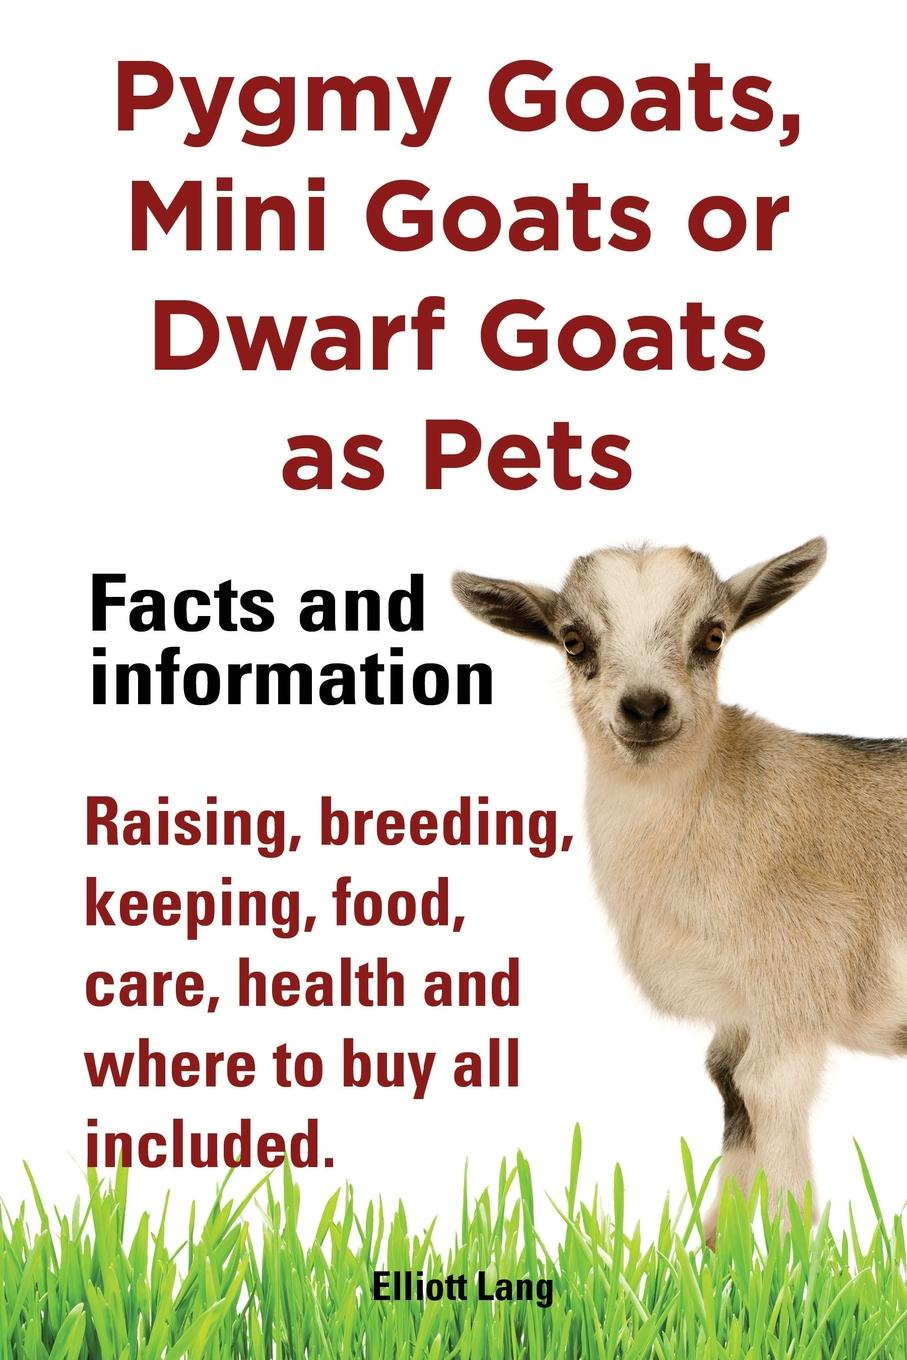 Elliott Lang Pygmy Goats as Pets. Pygmy Goats, Mini Goats or Dwarf Goats. Facts and Information. Raising, Breeding, Keeping, Milking, Food, Care, Health and Where the mountain goats tallahasse